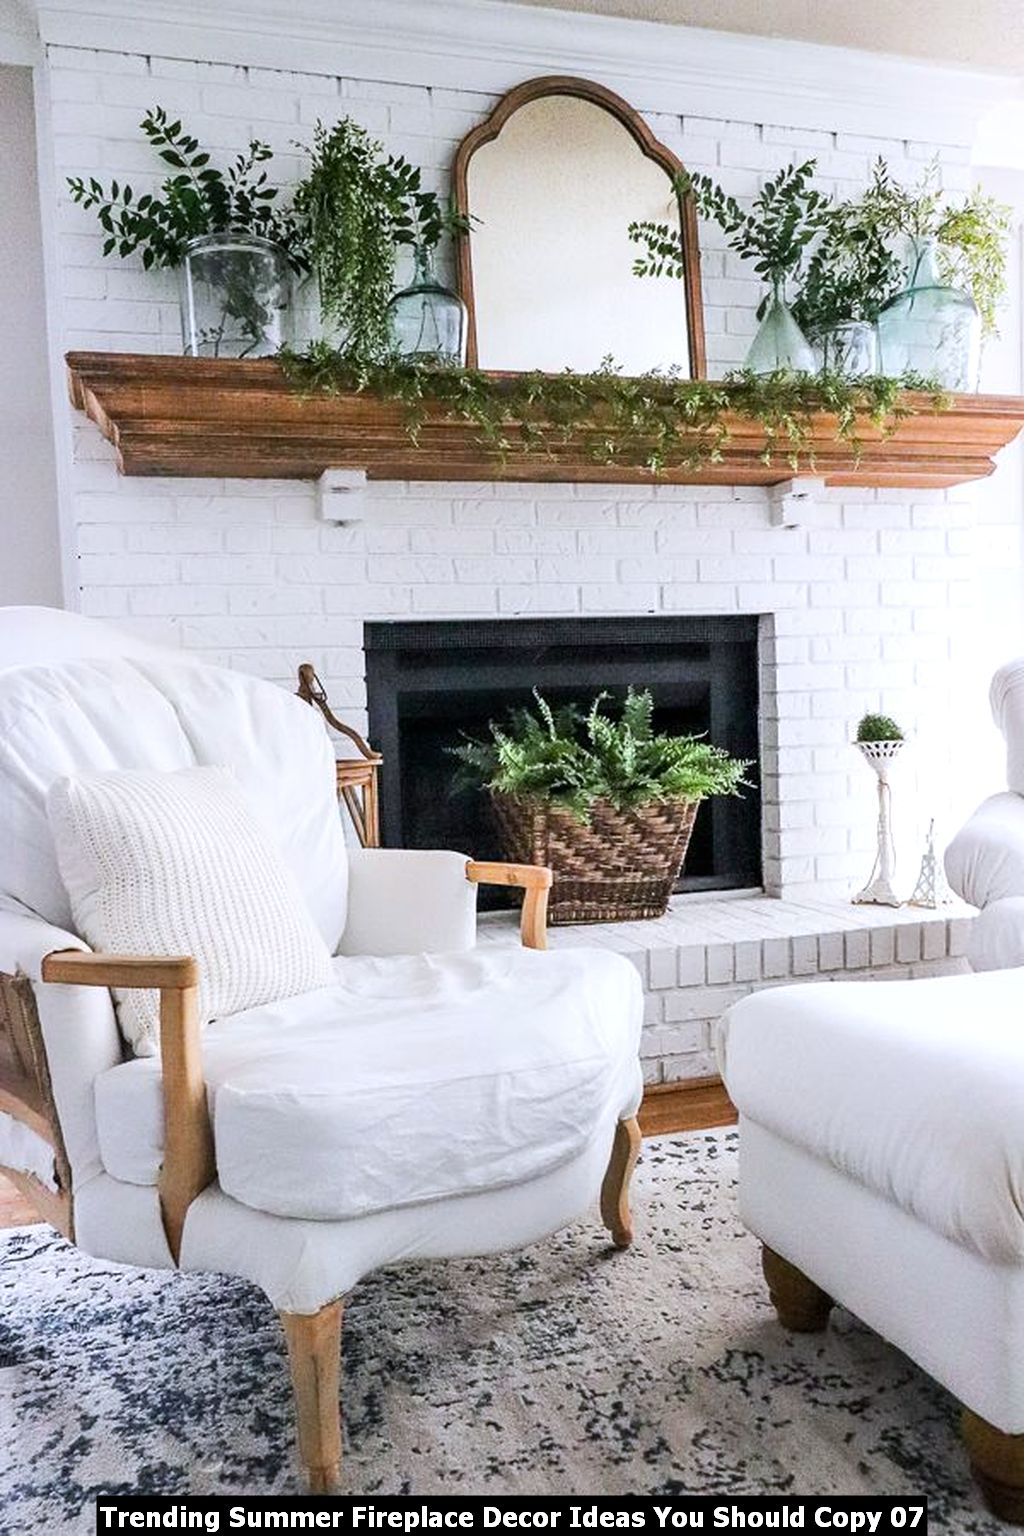 Trending Summer Fireplace Decor Ideas You Should Copy 07